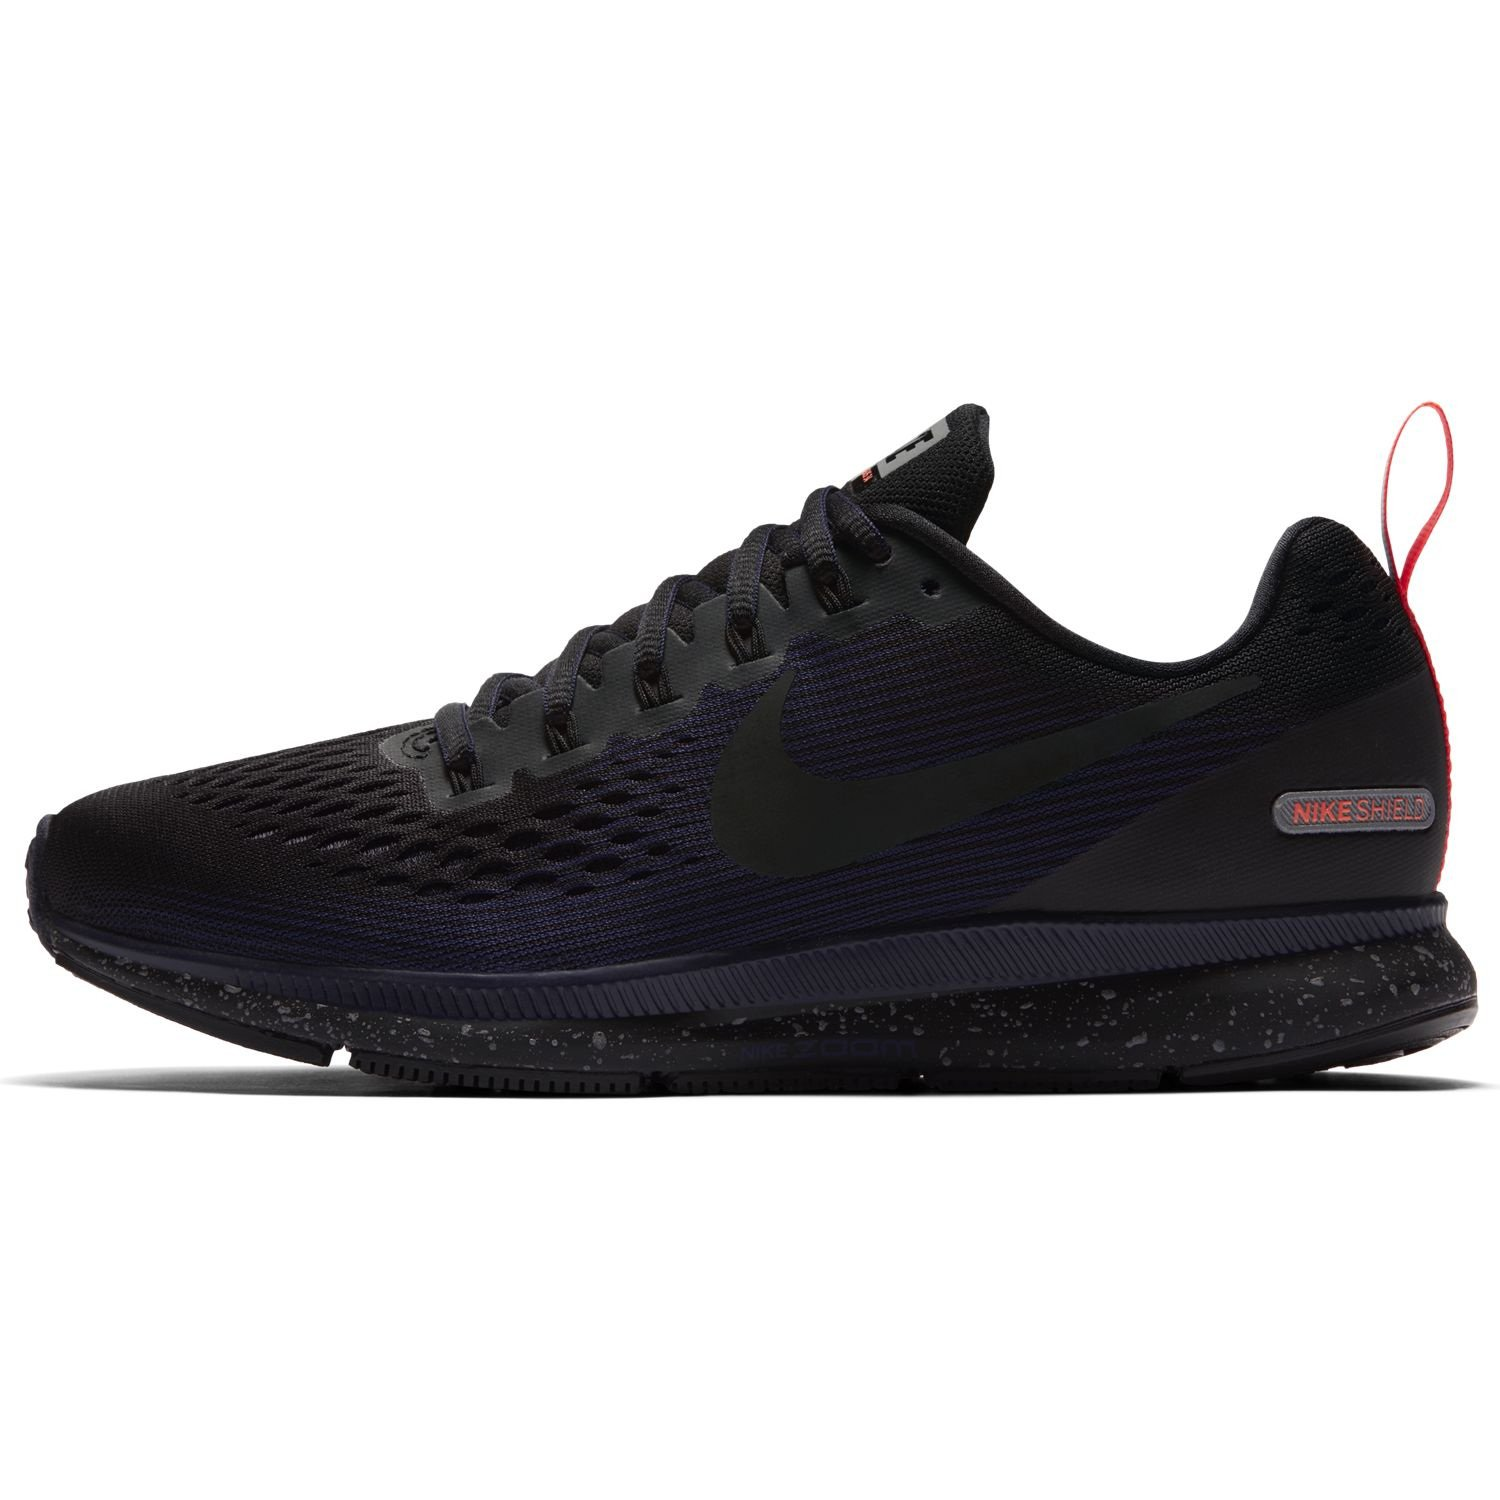 Nike Schuhe Gr. 28,5 in 91154 Roth for €5.00 for sale | Shpock